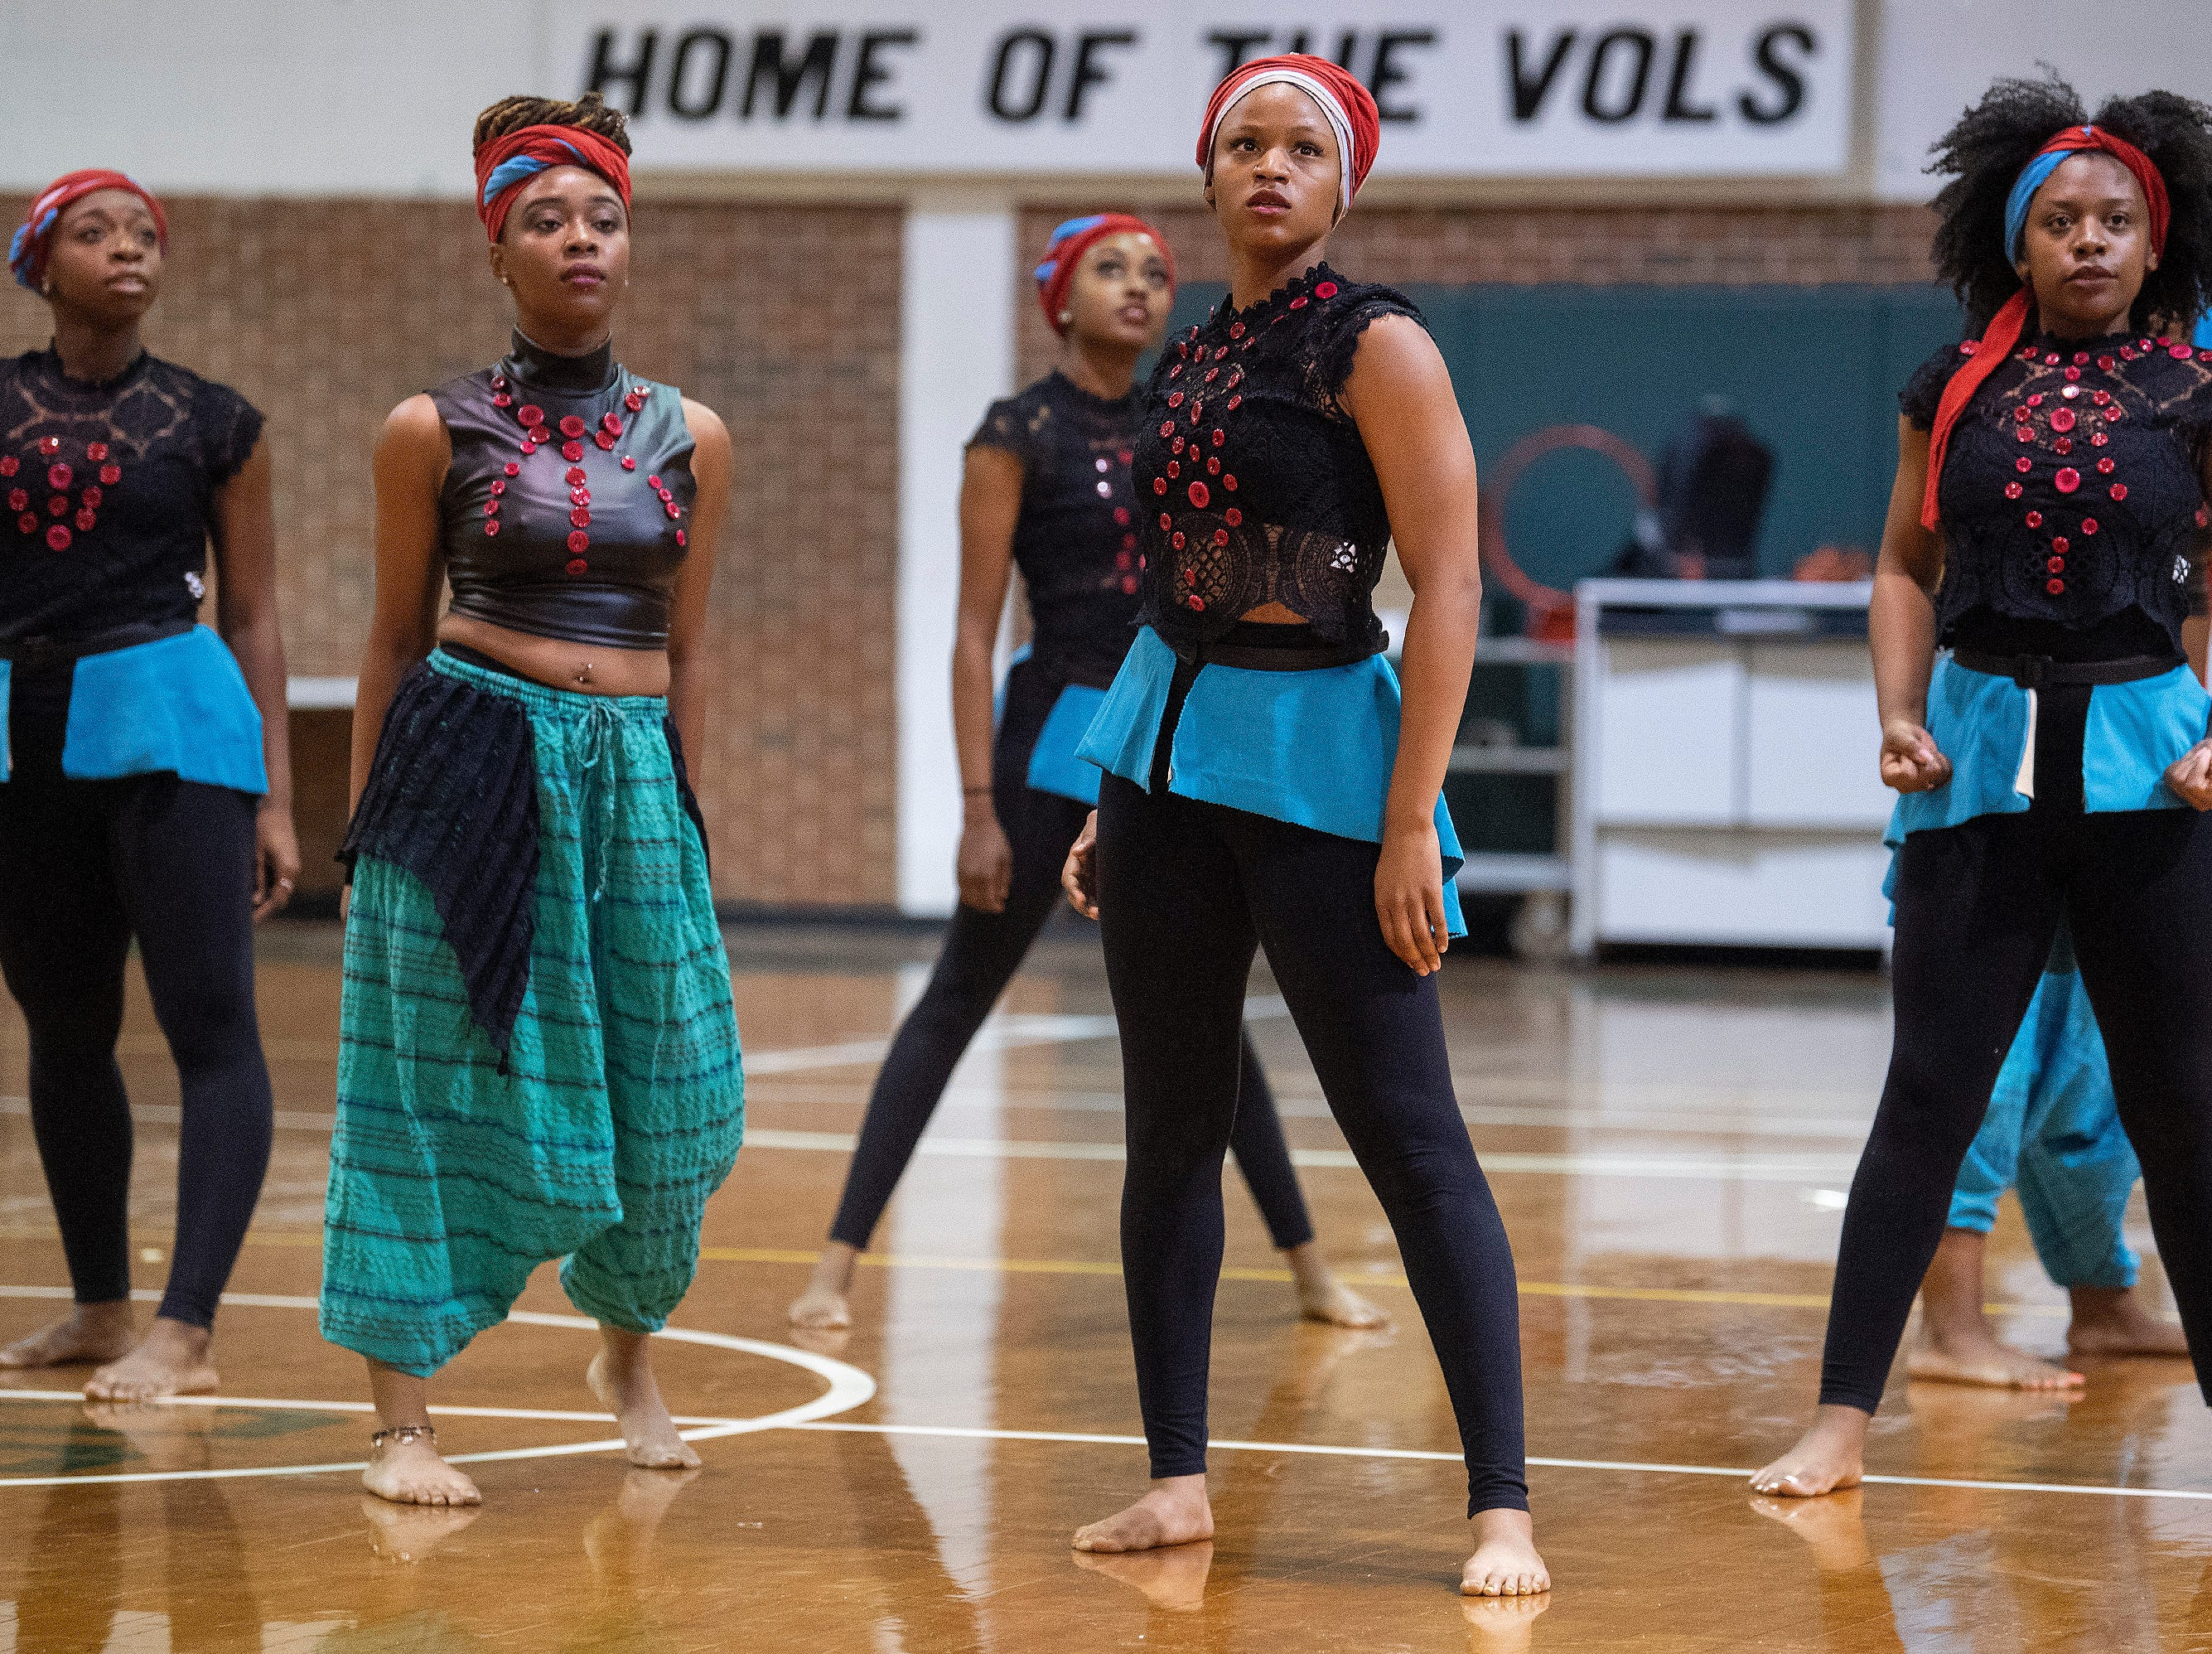 Alabama State University dancers performs during the ASU President's Tour stop at Jeff Davis High School in Montgomery, Ala., on Friday April 12, 2019.